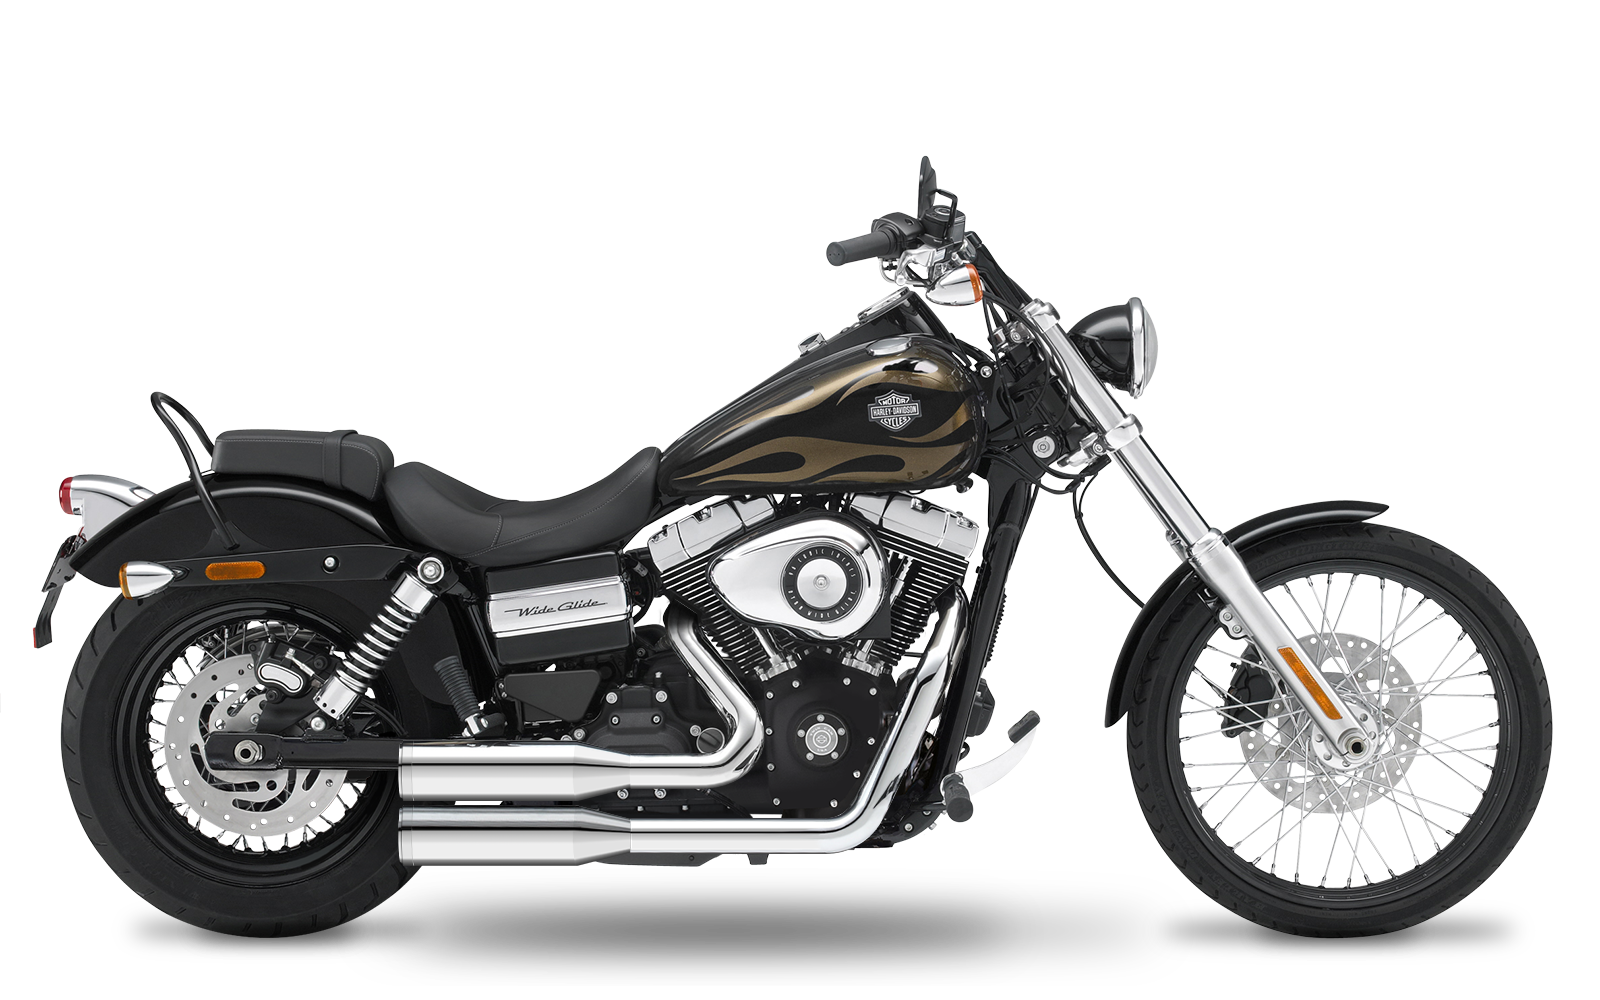 Dyna - Wide Glide - TC103 - 2013-2016 - Complete systems